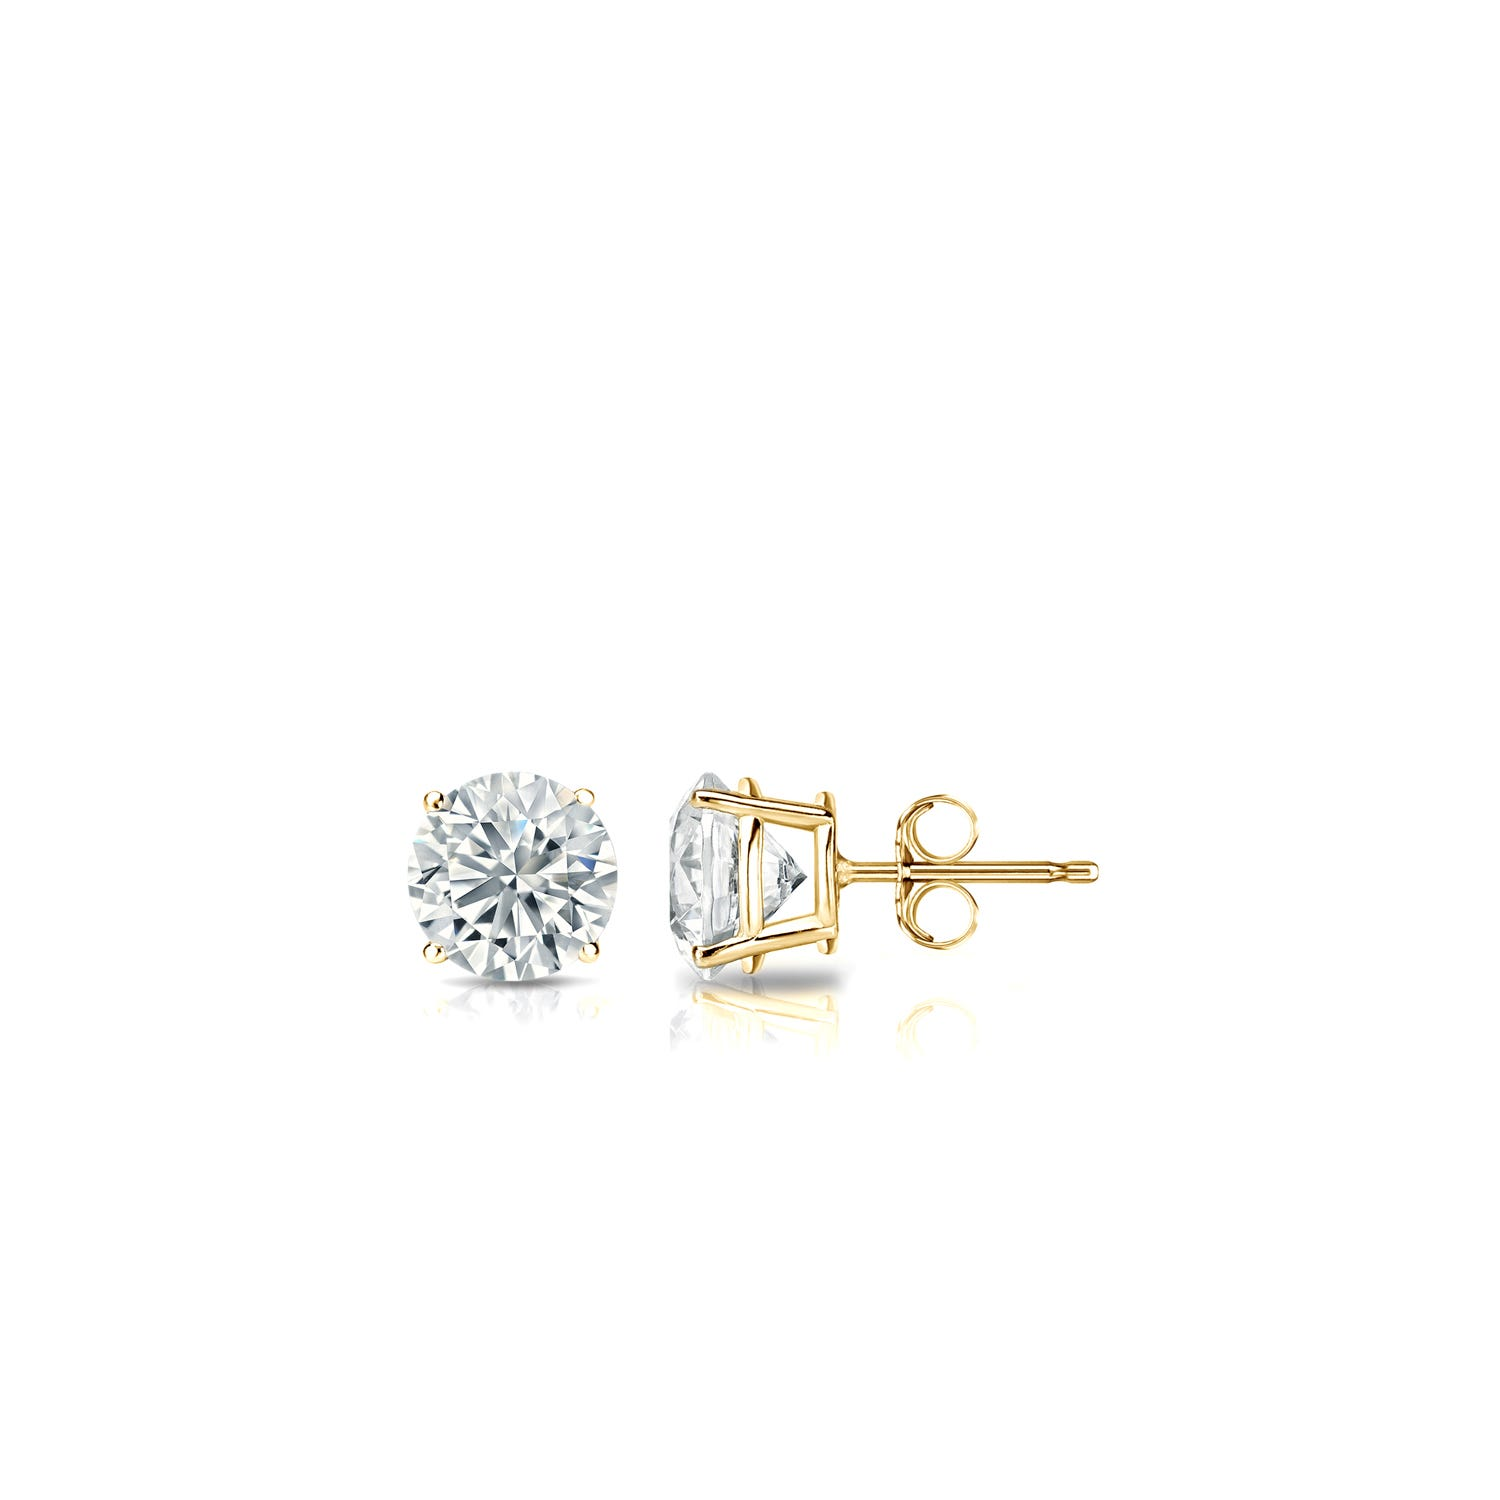 Diamond 1/6ctw. Round Solitaire Stud Earrings (I-J, I2) 14k Yellow Gold